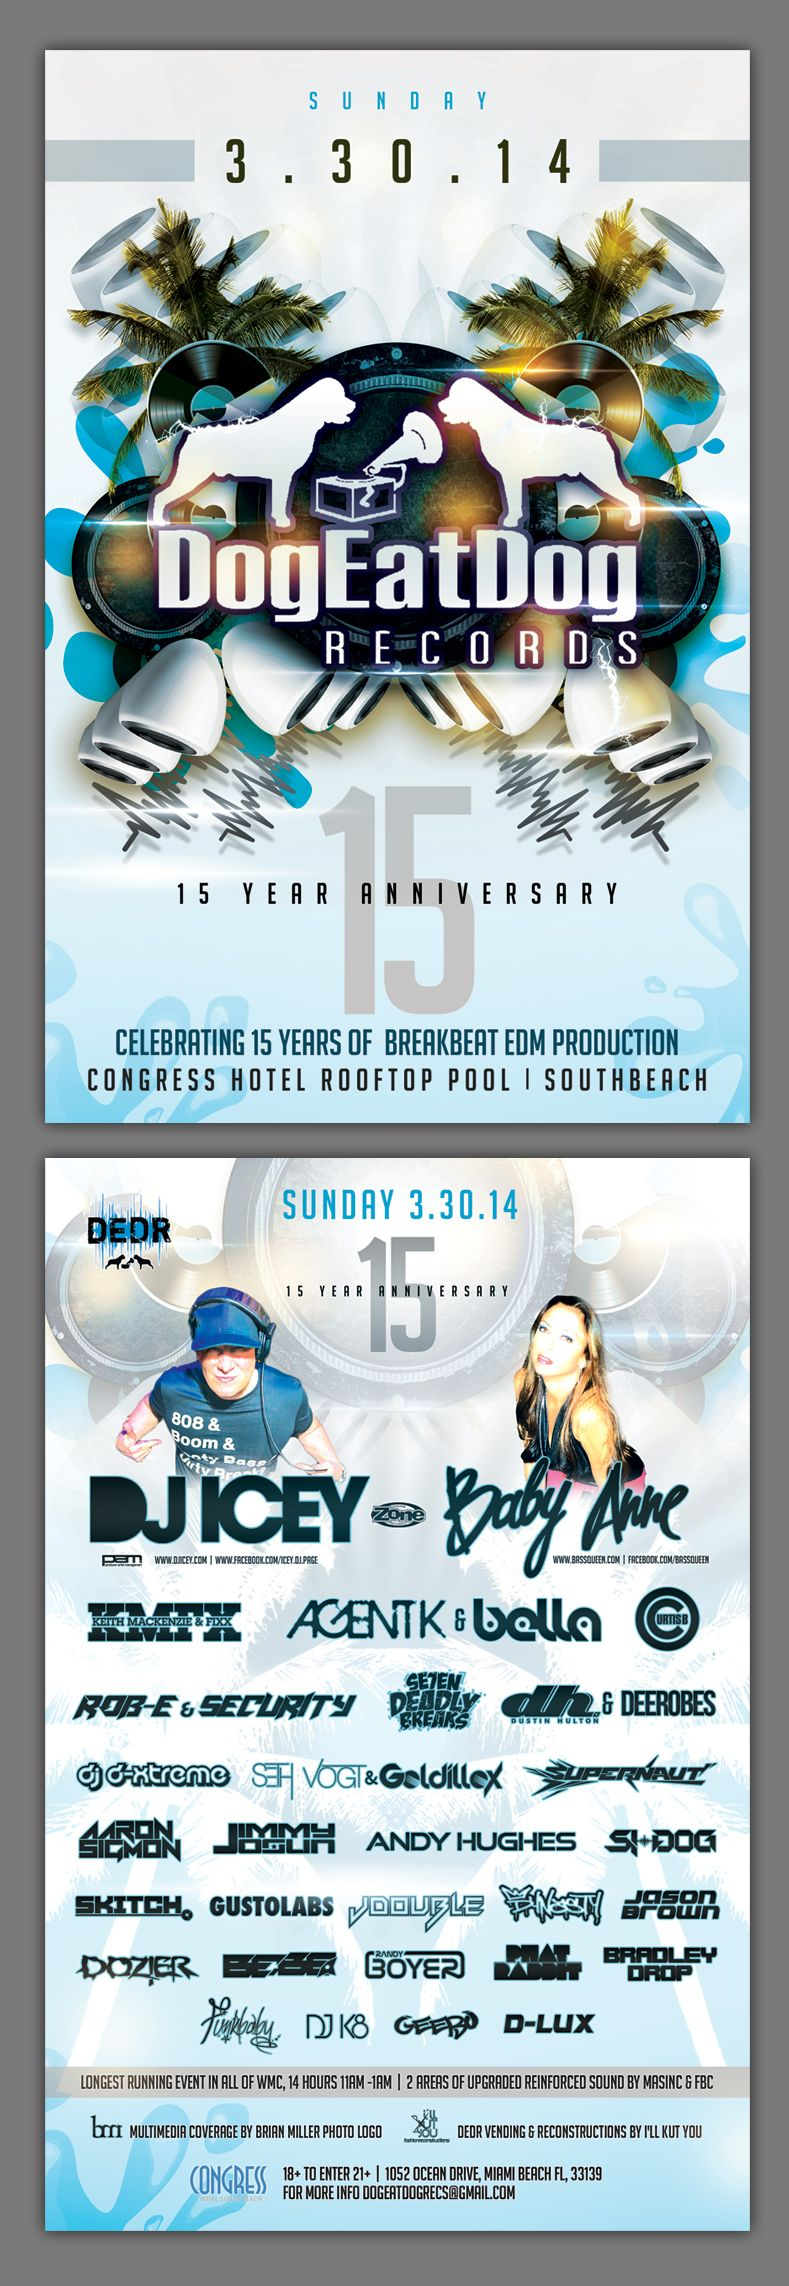 30 March 2014: Dog Eat Dog Records 15 Year Anniversary @ Congress Hotel [Miami Beach] - Rooftop pool party ft DJK8, FunkBaby, Baby Anne & DJ Icey!